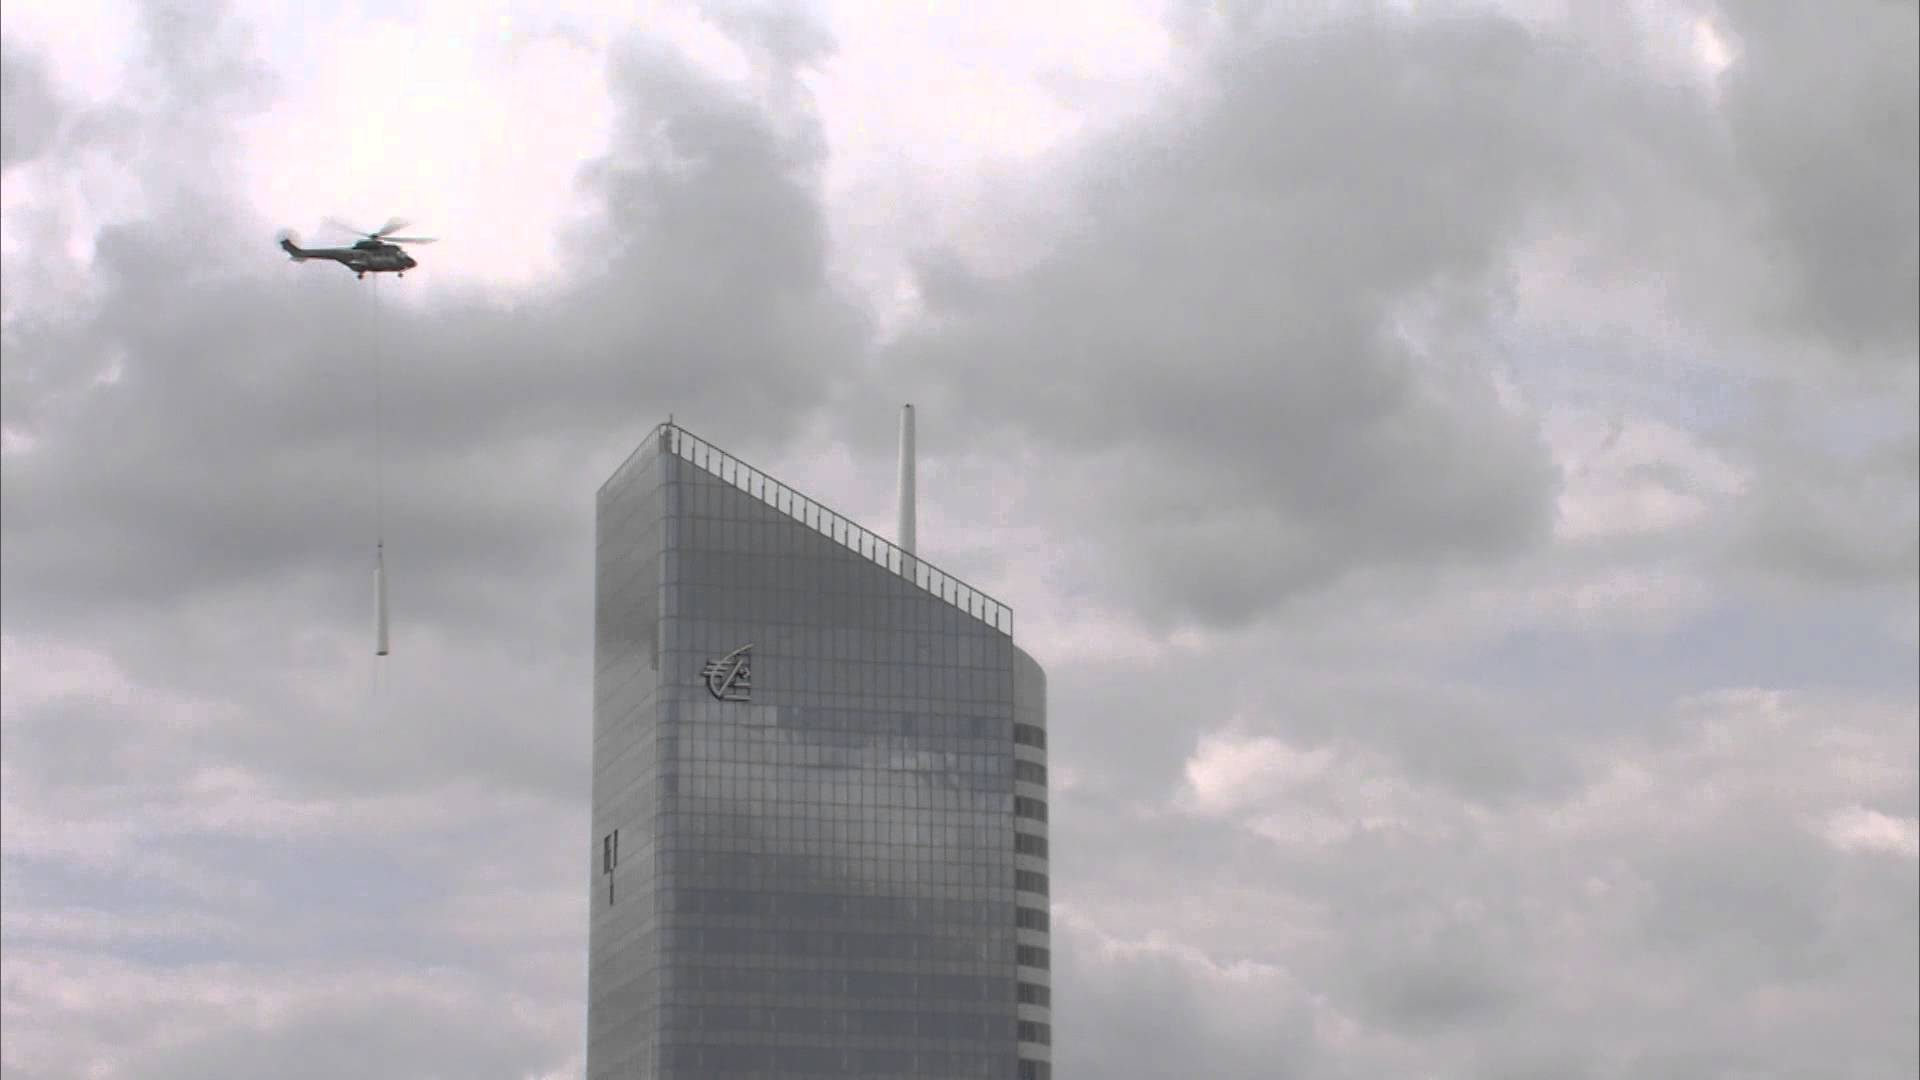 Precision helicopter flying installing a building spire